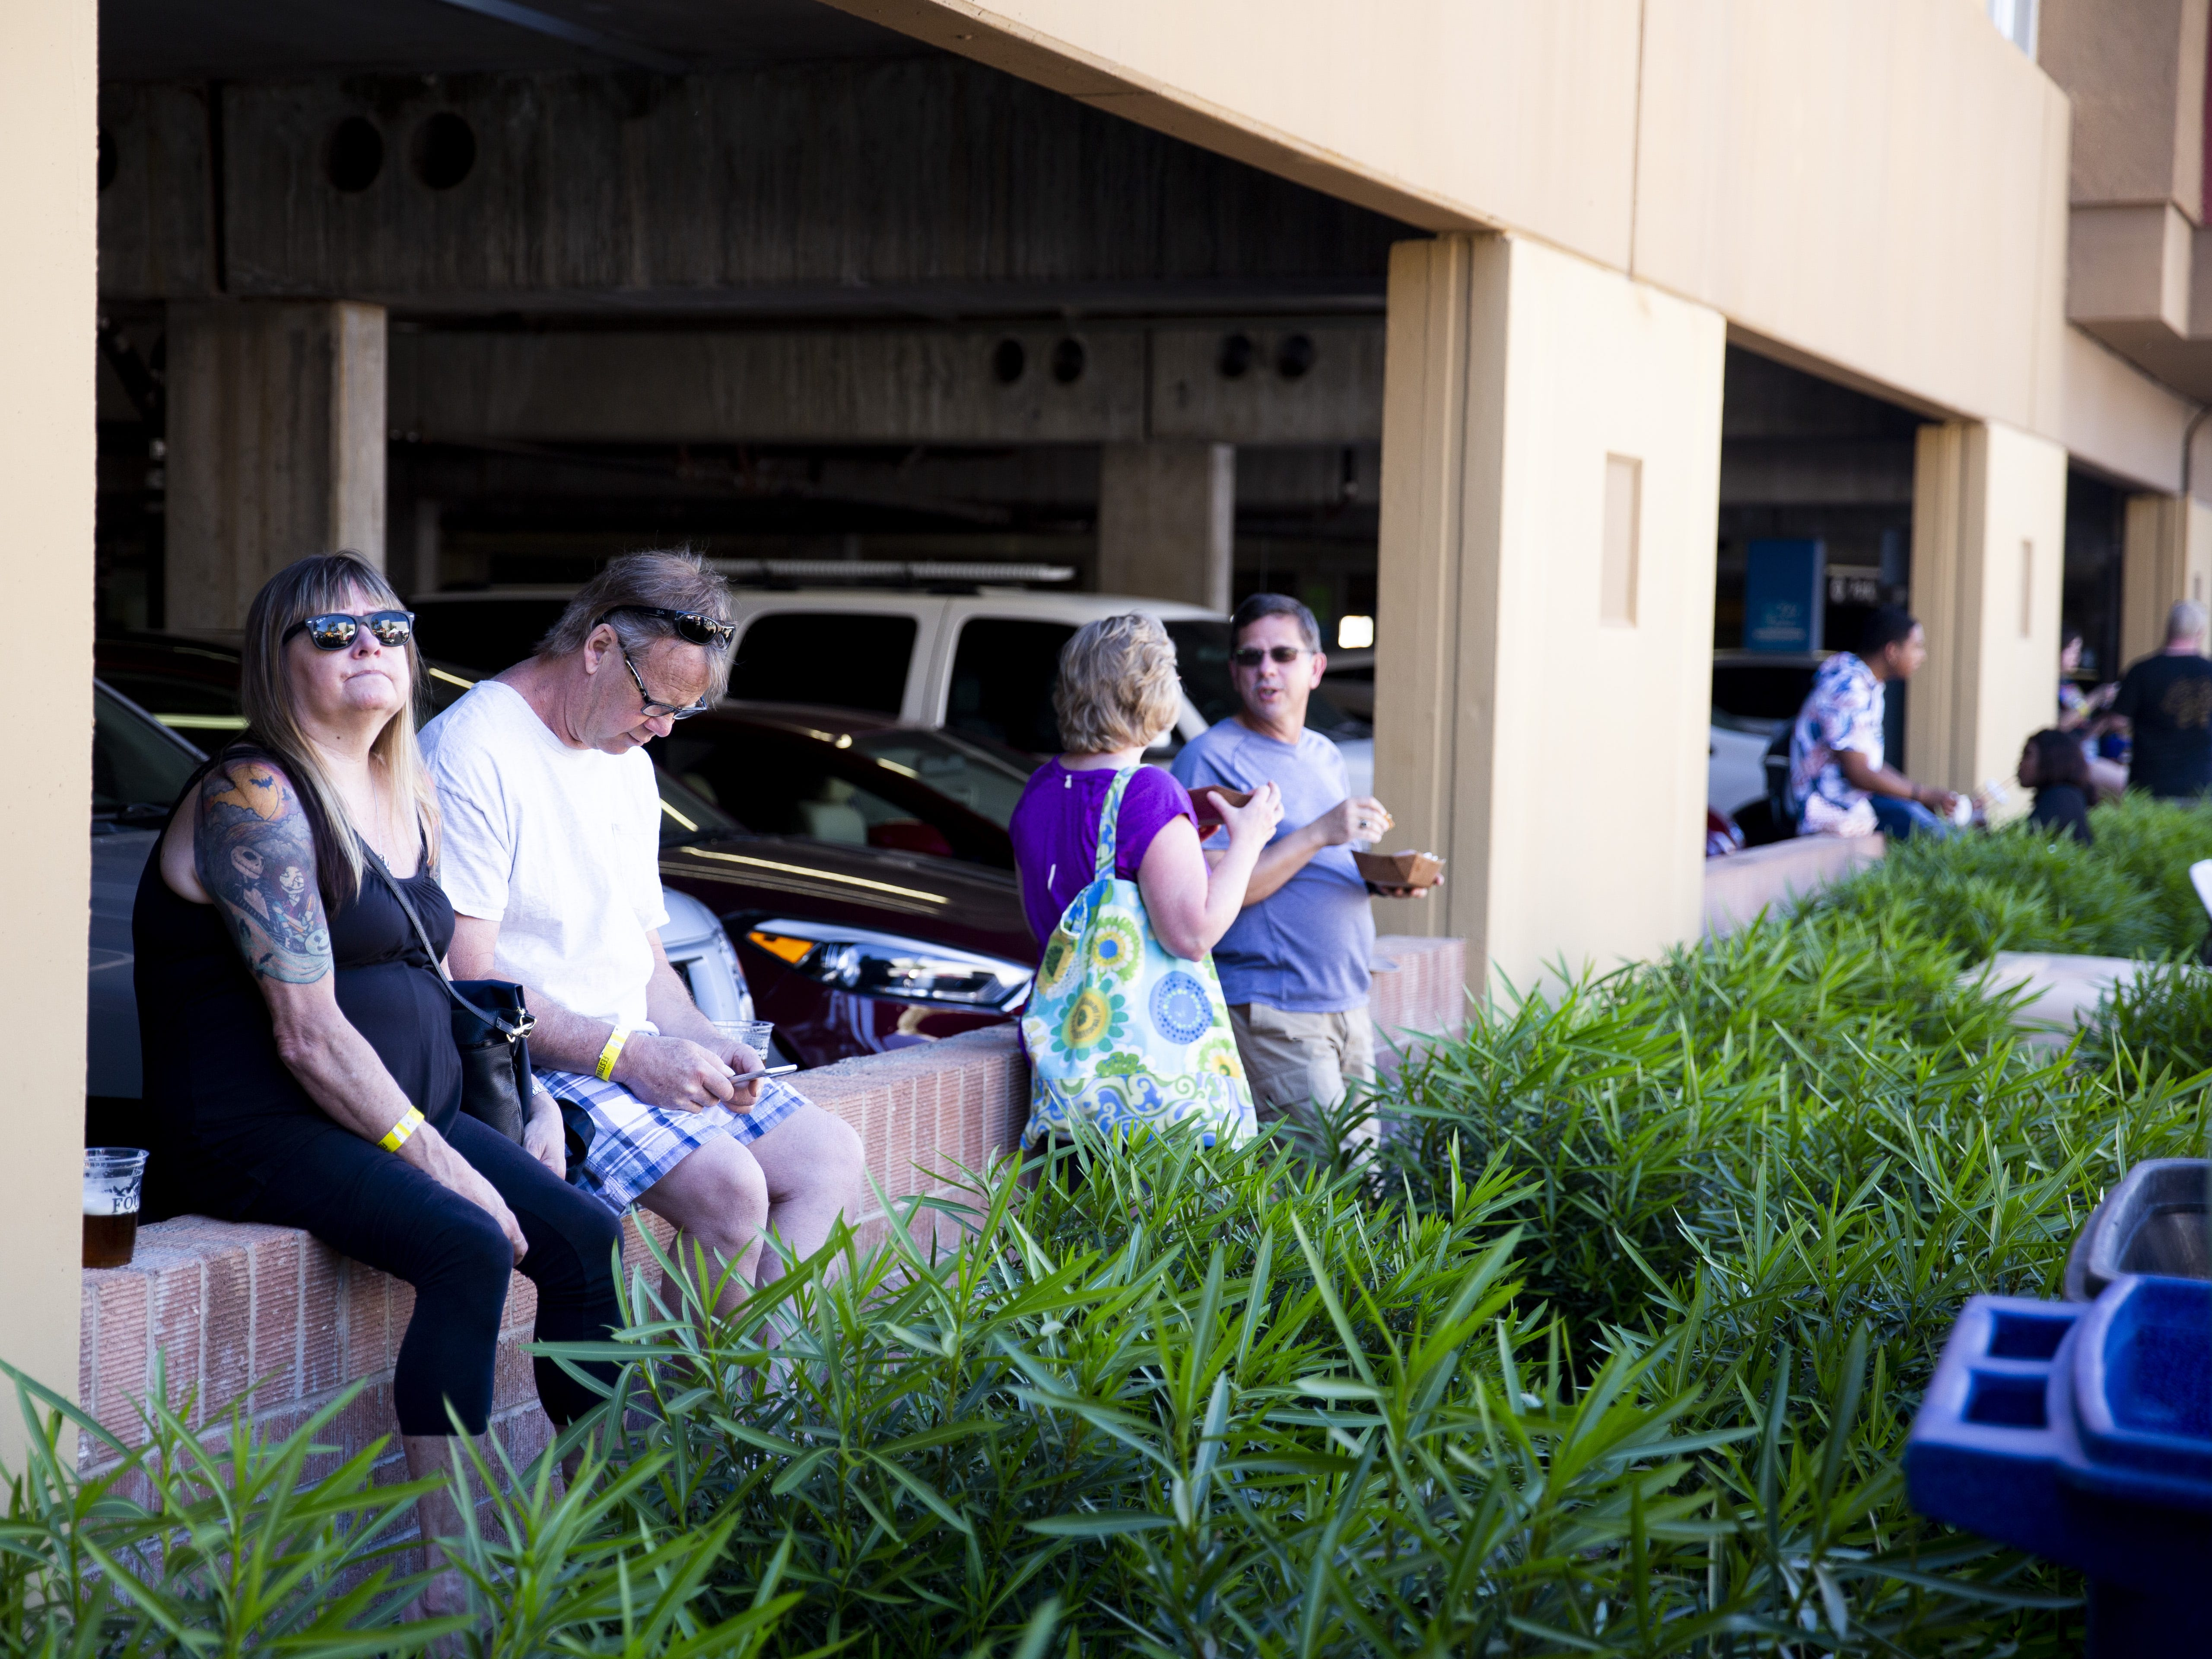 People perch on the edge of a parking garage wall to eat lunch from food trucks during the Spring Tempe Festival of the Arts in downtown Tempe on March 30, 2019.